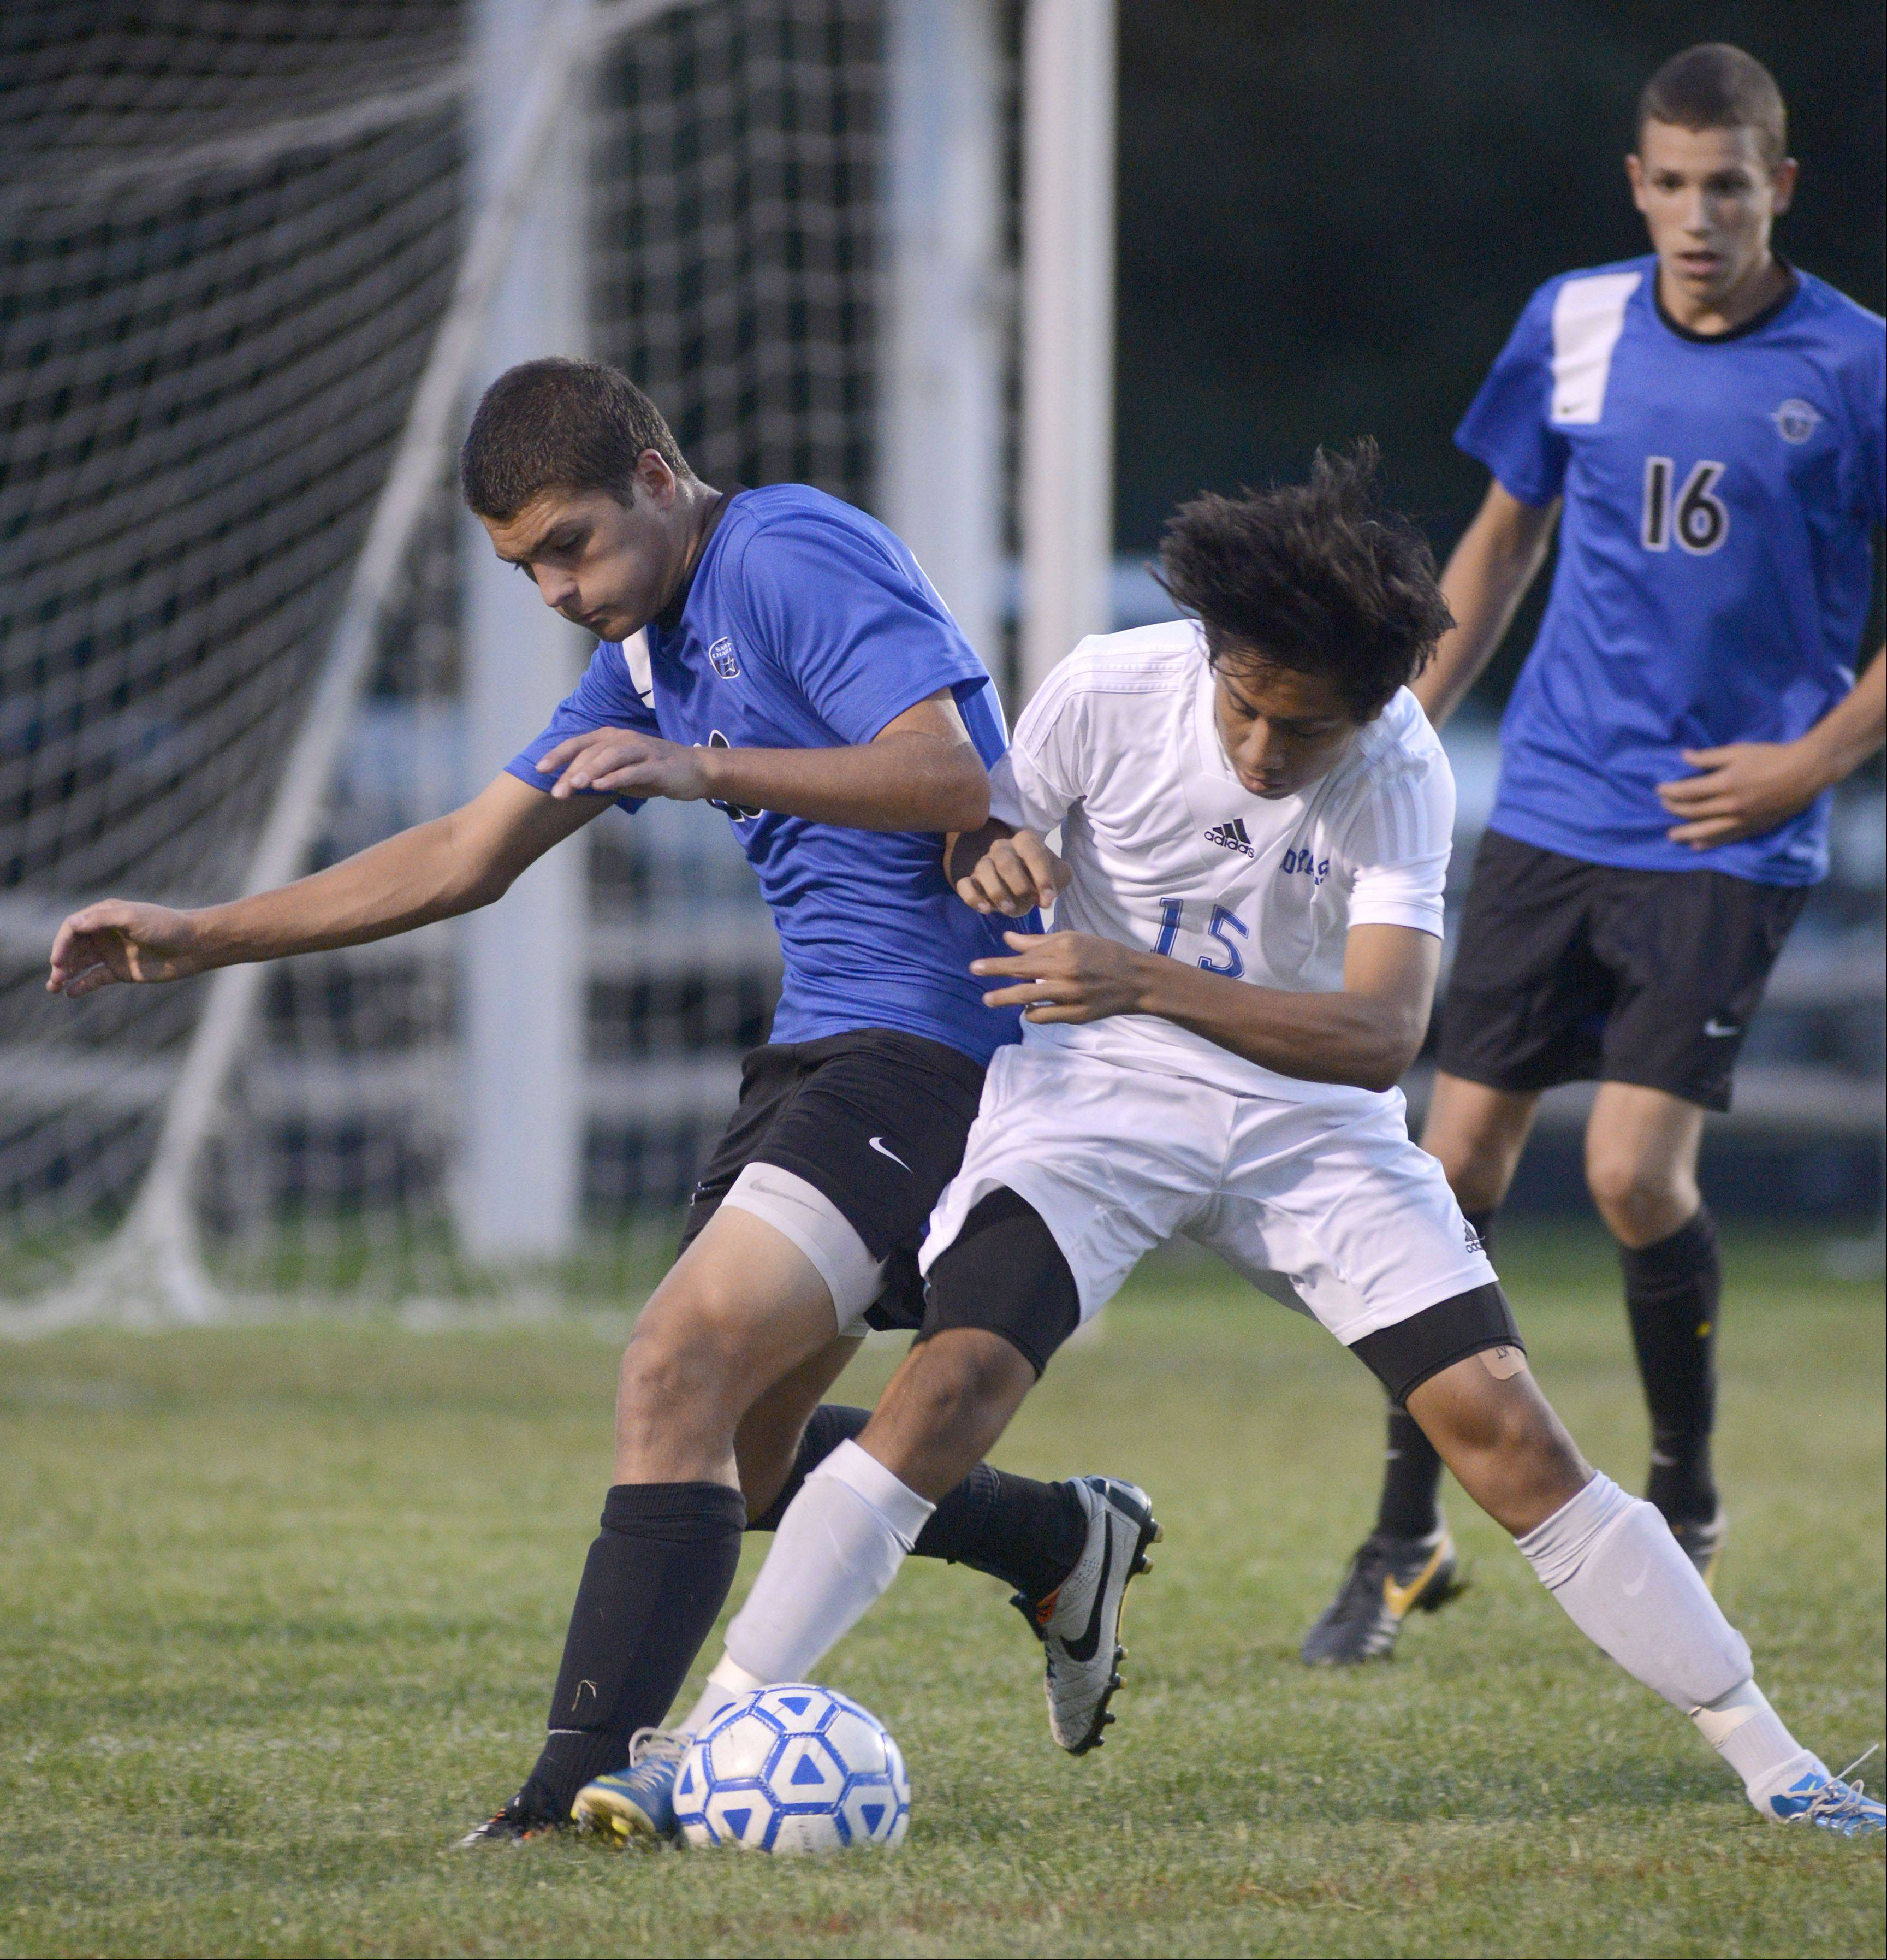 St. Charles North's Colin Kraft, left, and Larkin's Ricardo Nava battle for the ball in the first half on Tuesday at Memorial Field in Elgin.